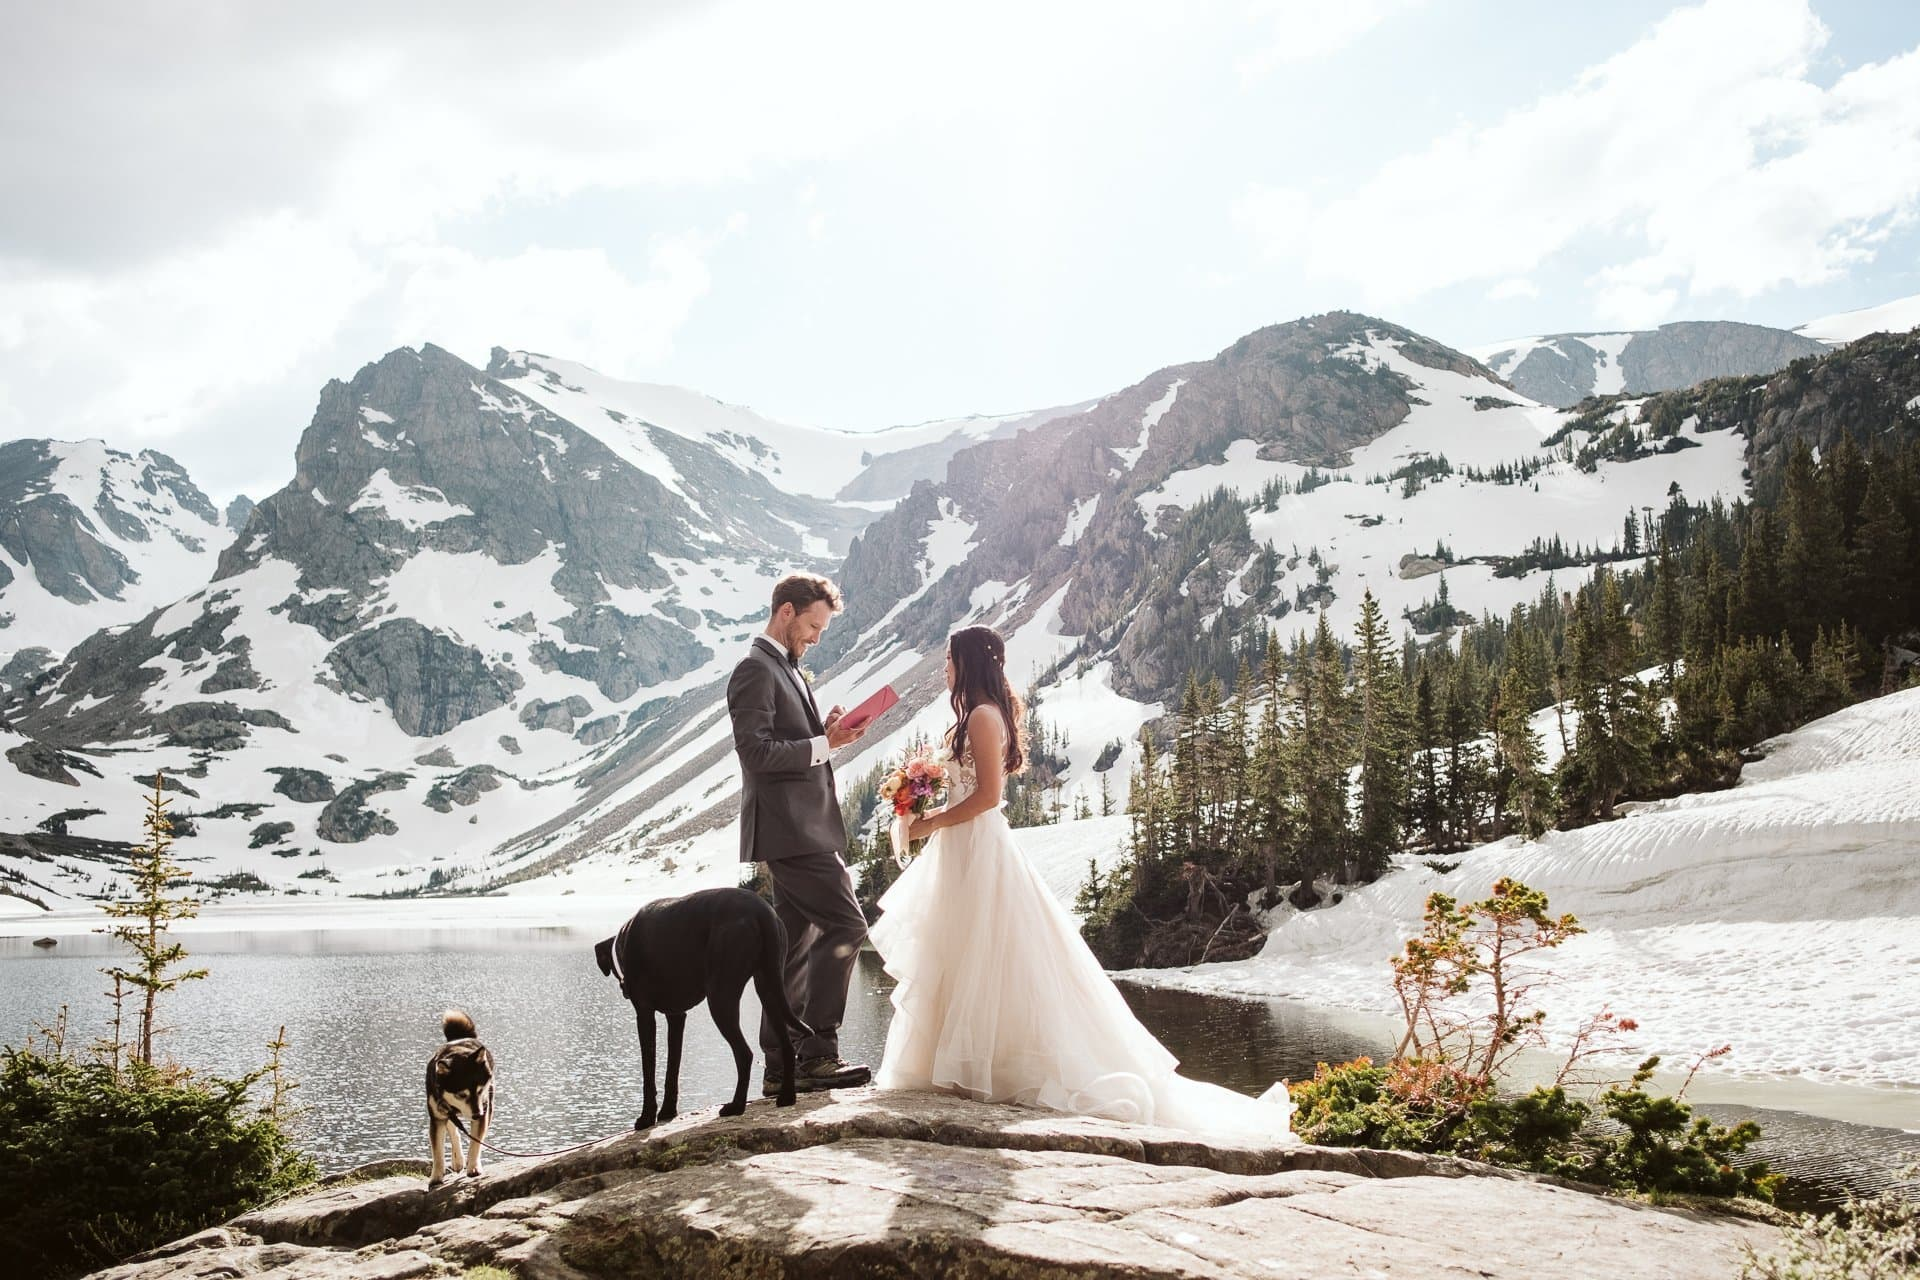 Indian Peaks Wilderness hiking elopement